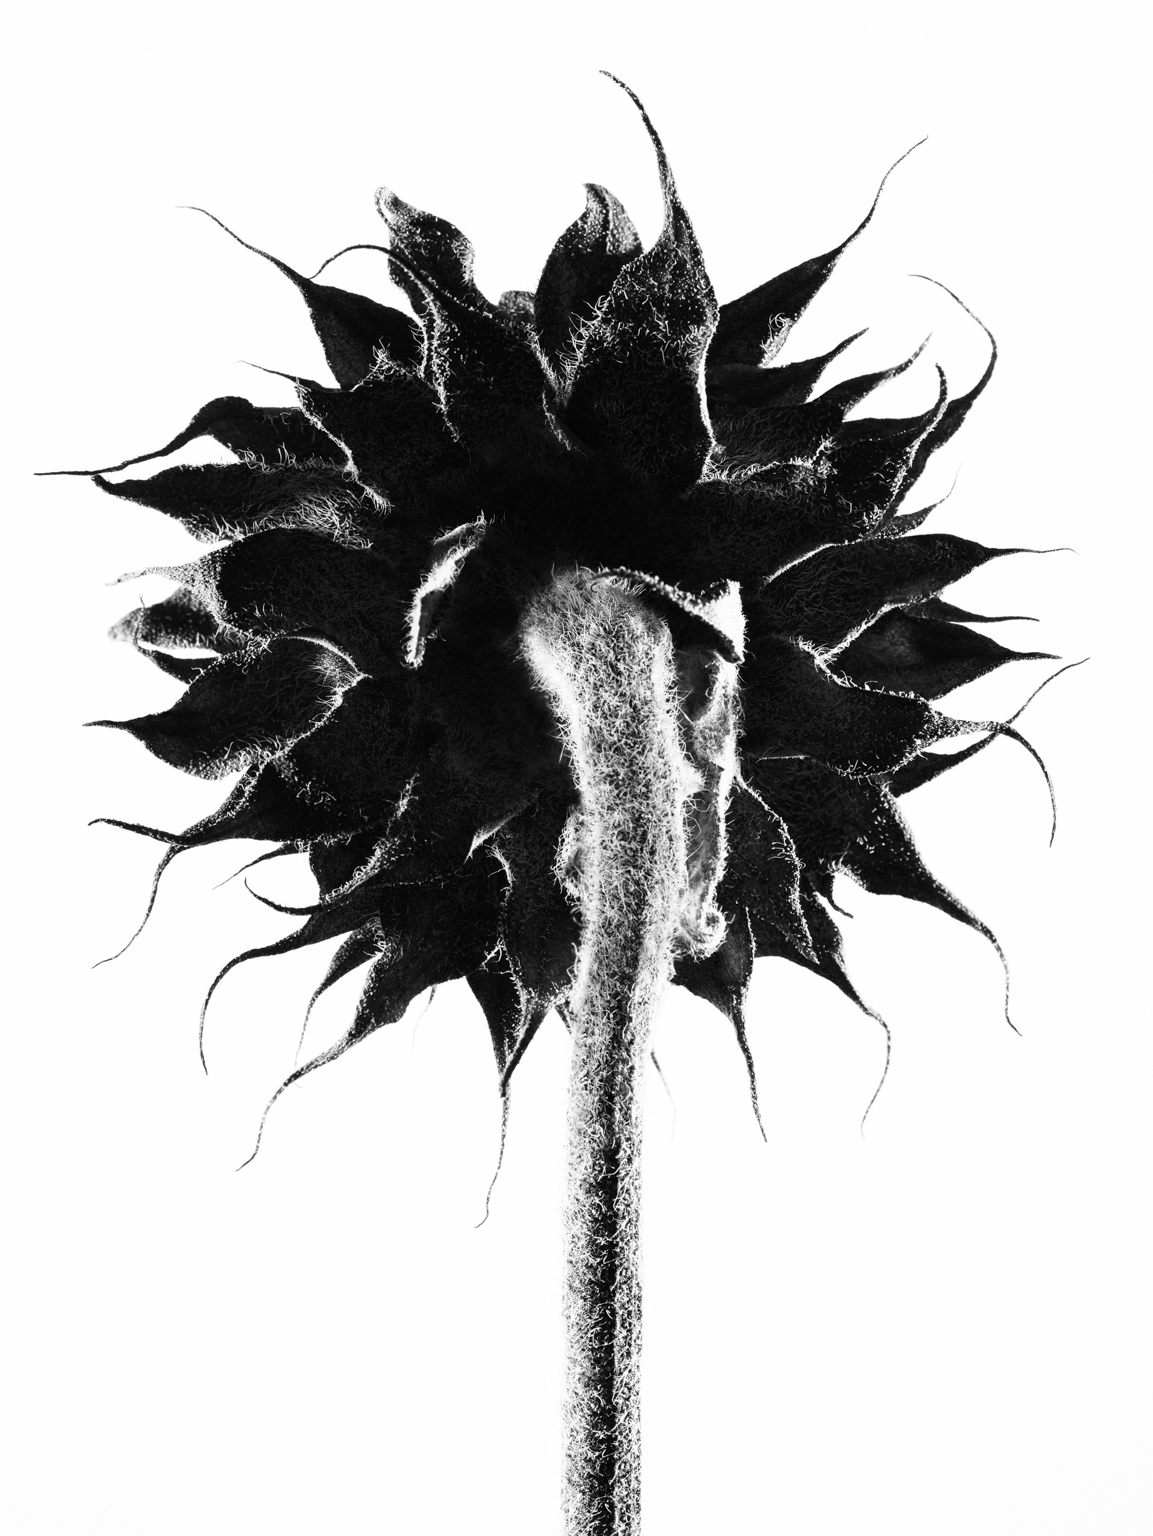 017_11_18_08_dried_sunflower_129_v1bw